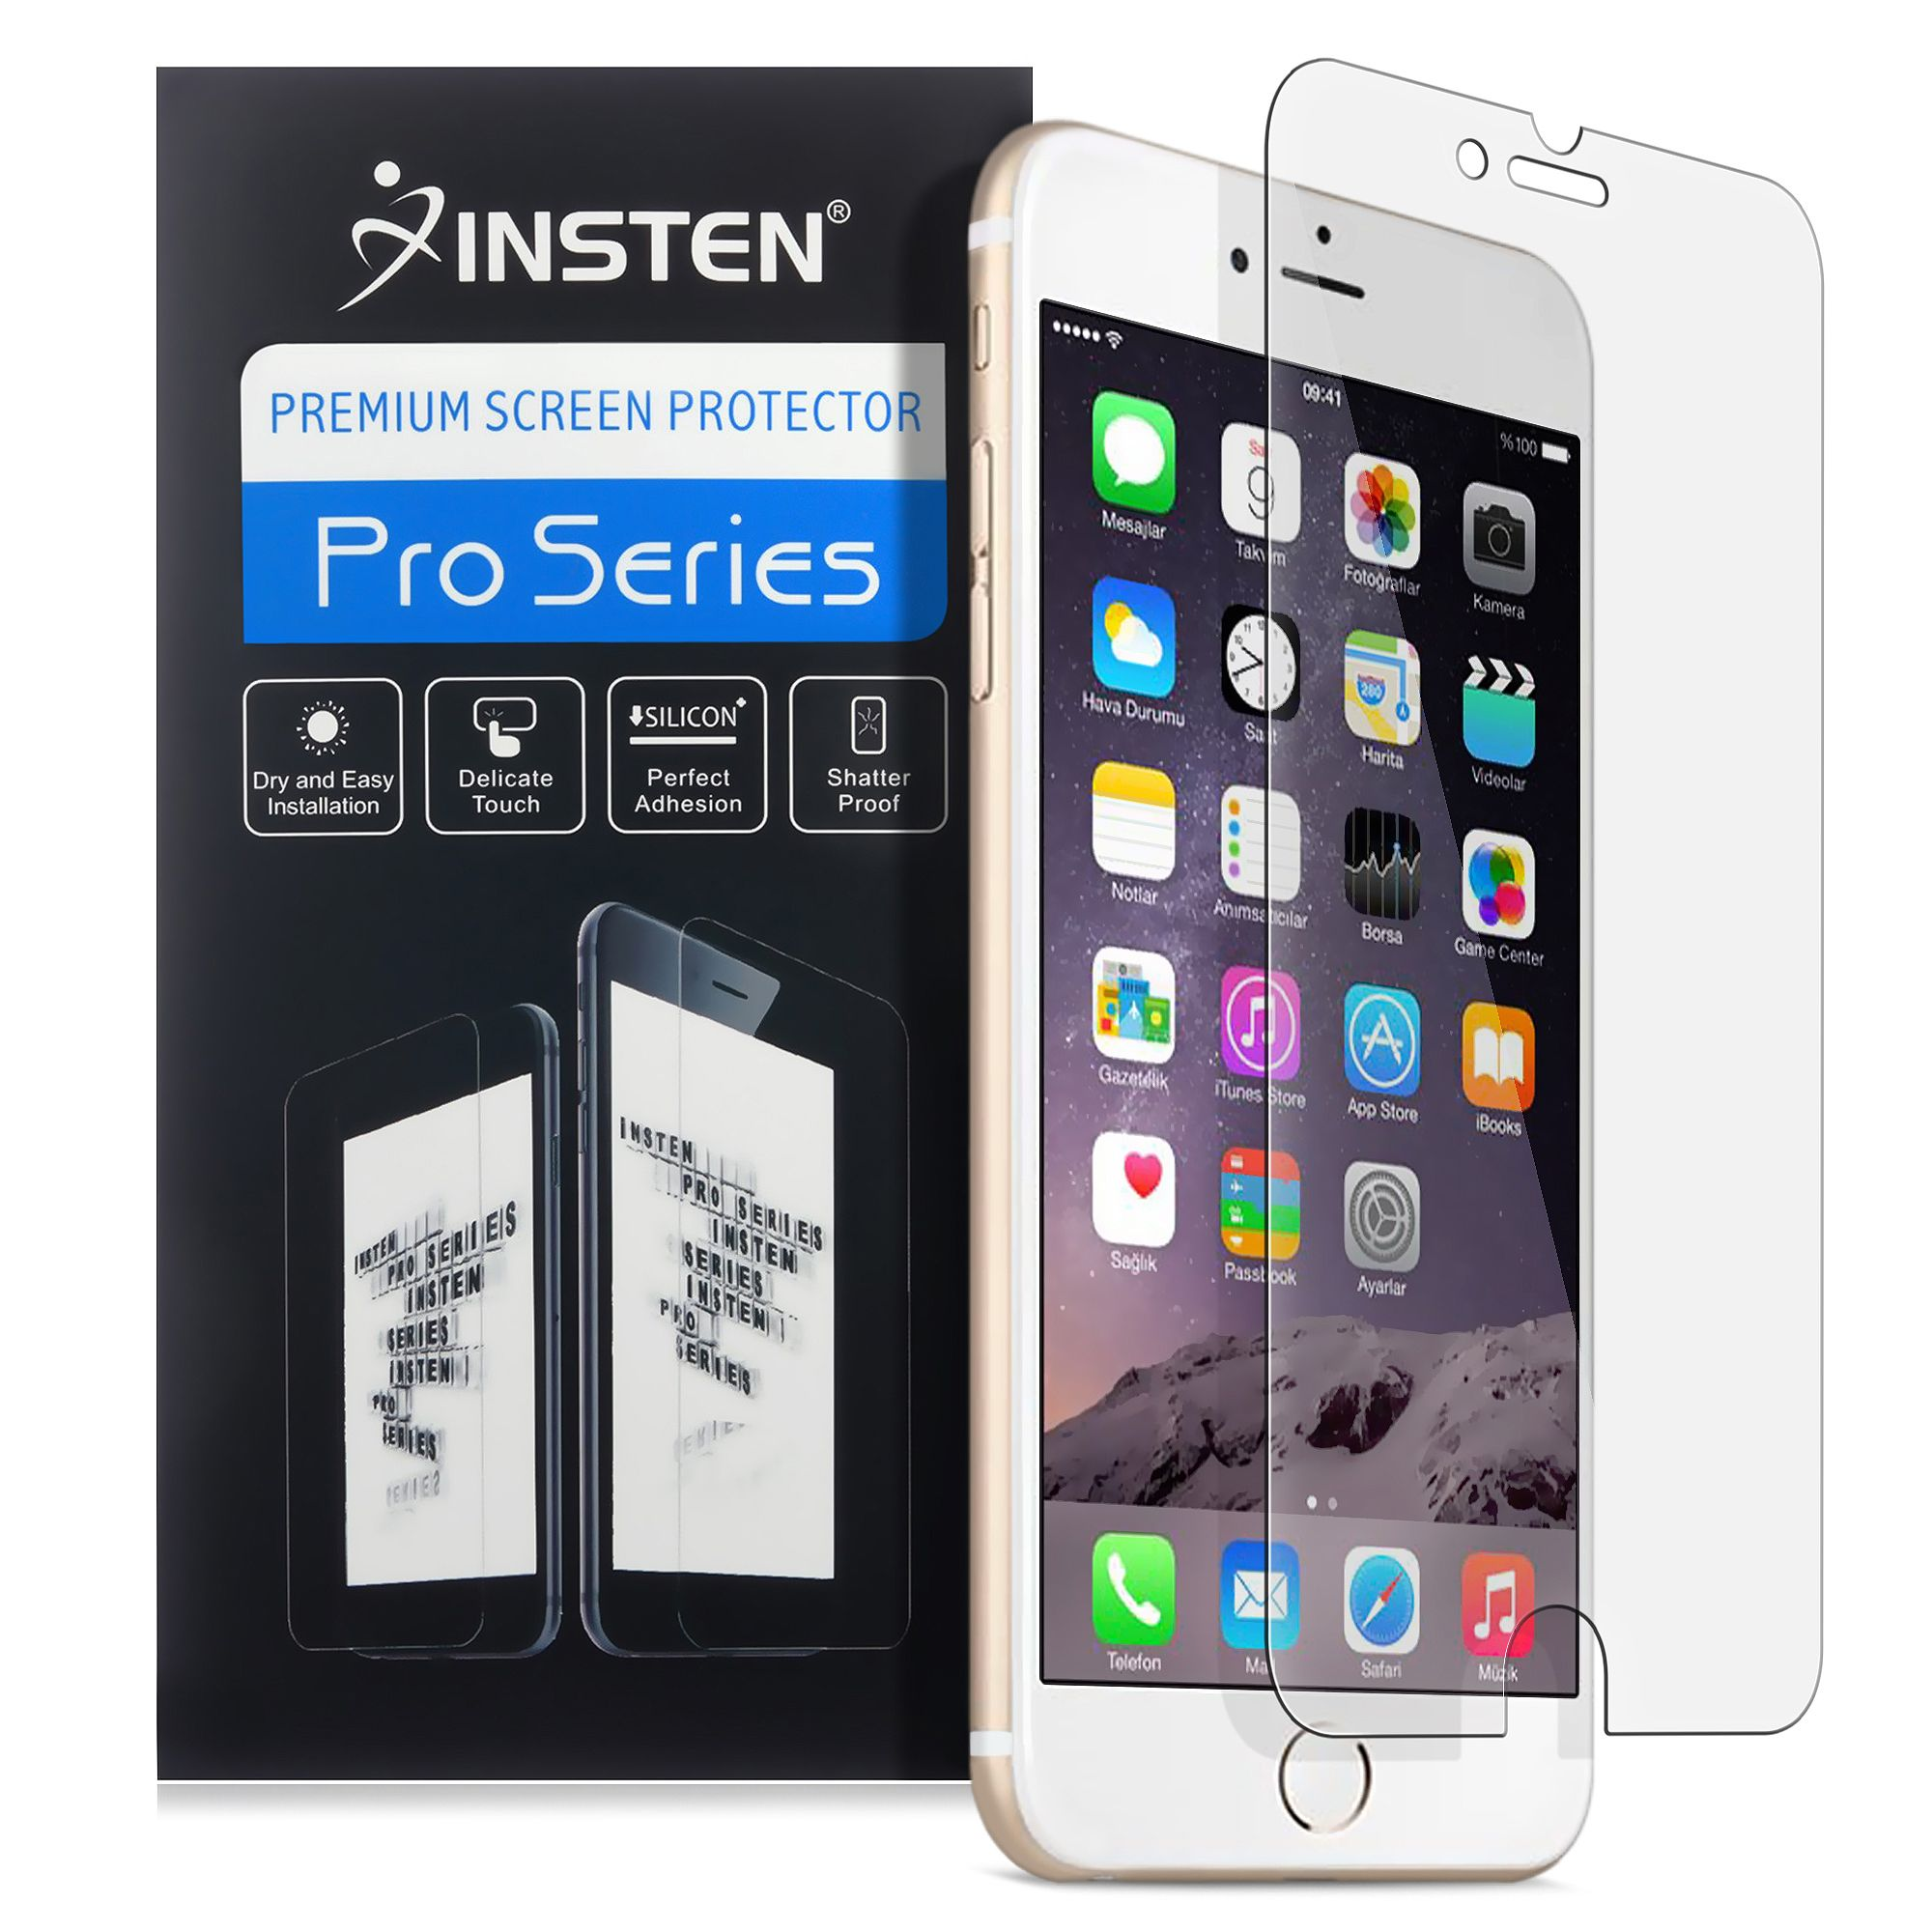 Insten 6 x Anti Glare Matte Screen Protector Film For iPhone 6S Plus / 6 Plus 5.5""